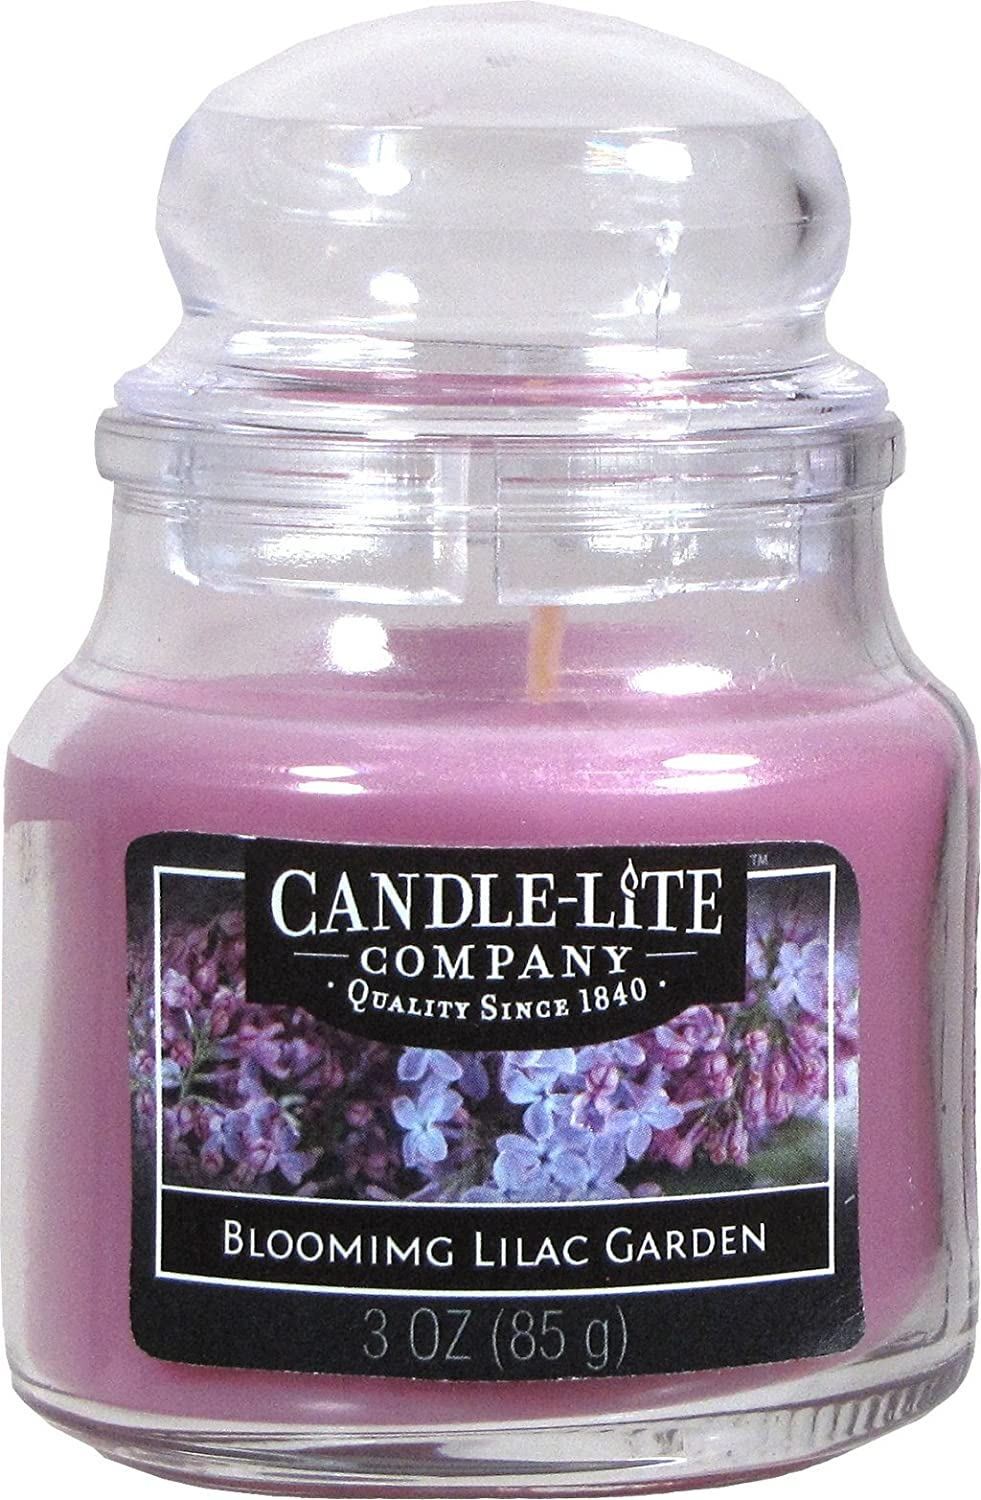 Candle Lite–Large Jar Candle–Blooming Lilac Garden 85g/Beads 6x 6x 9.5cm Candle-liteTM 4173382